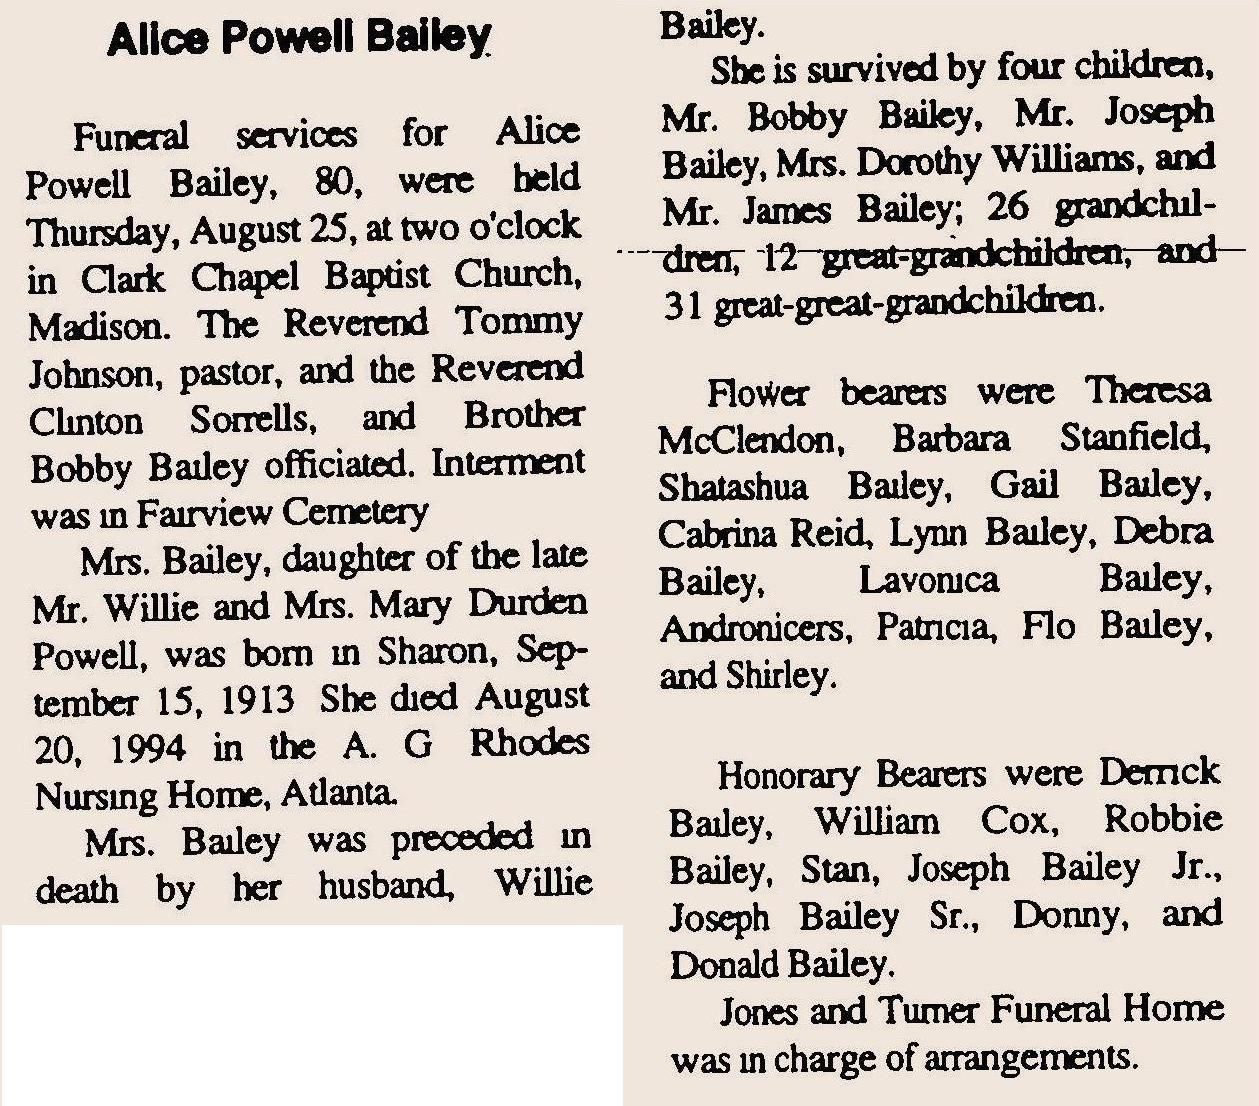 Obituary_BAILEY-AlicePowell-1994.jpg